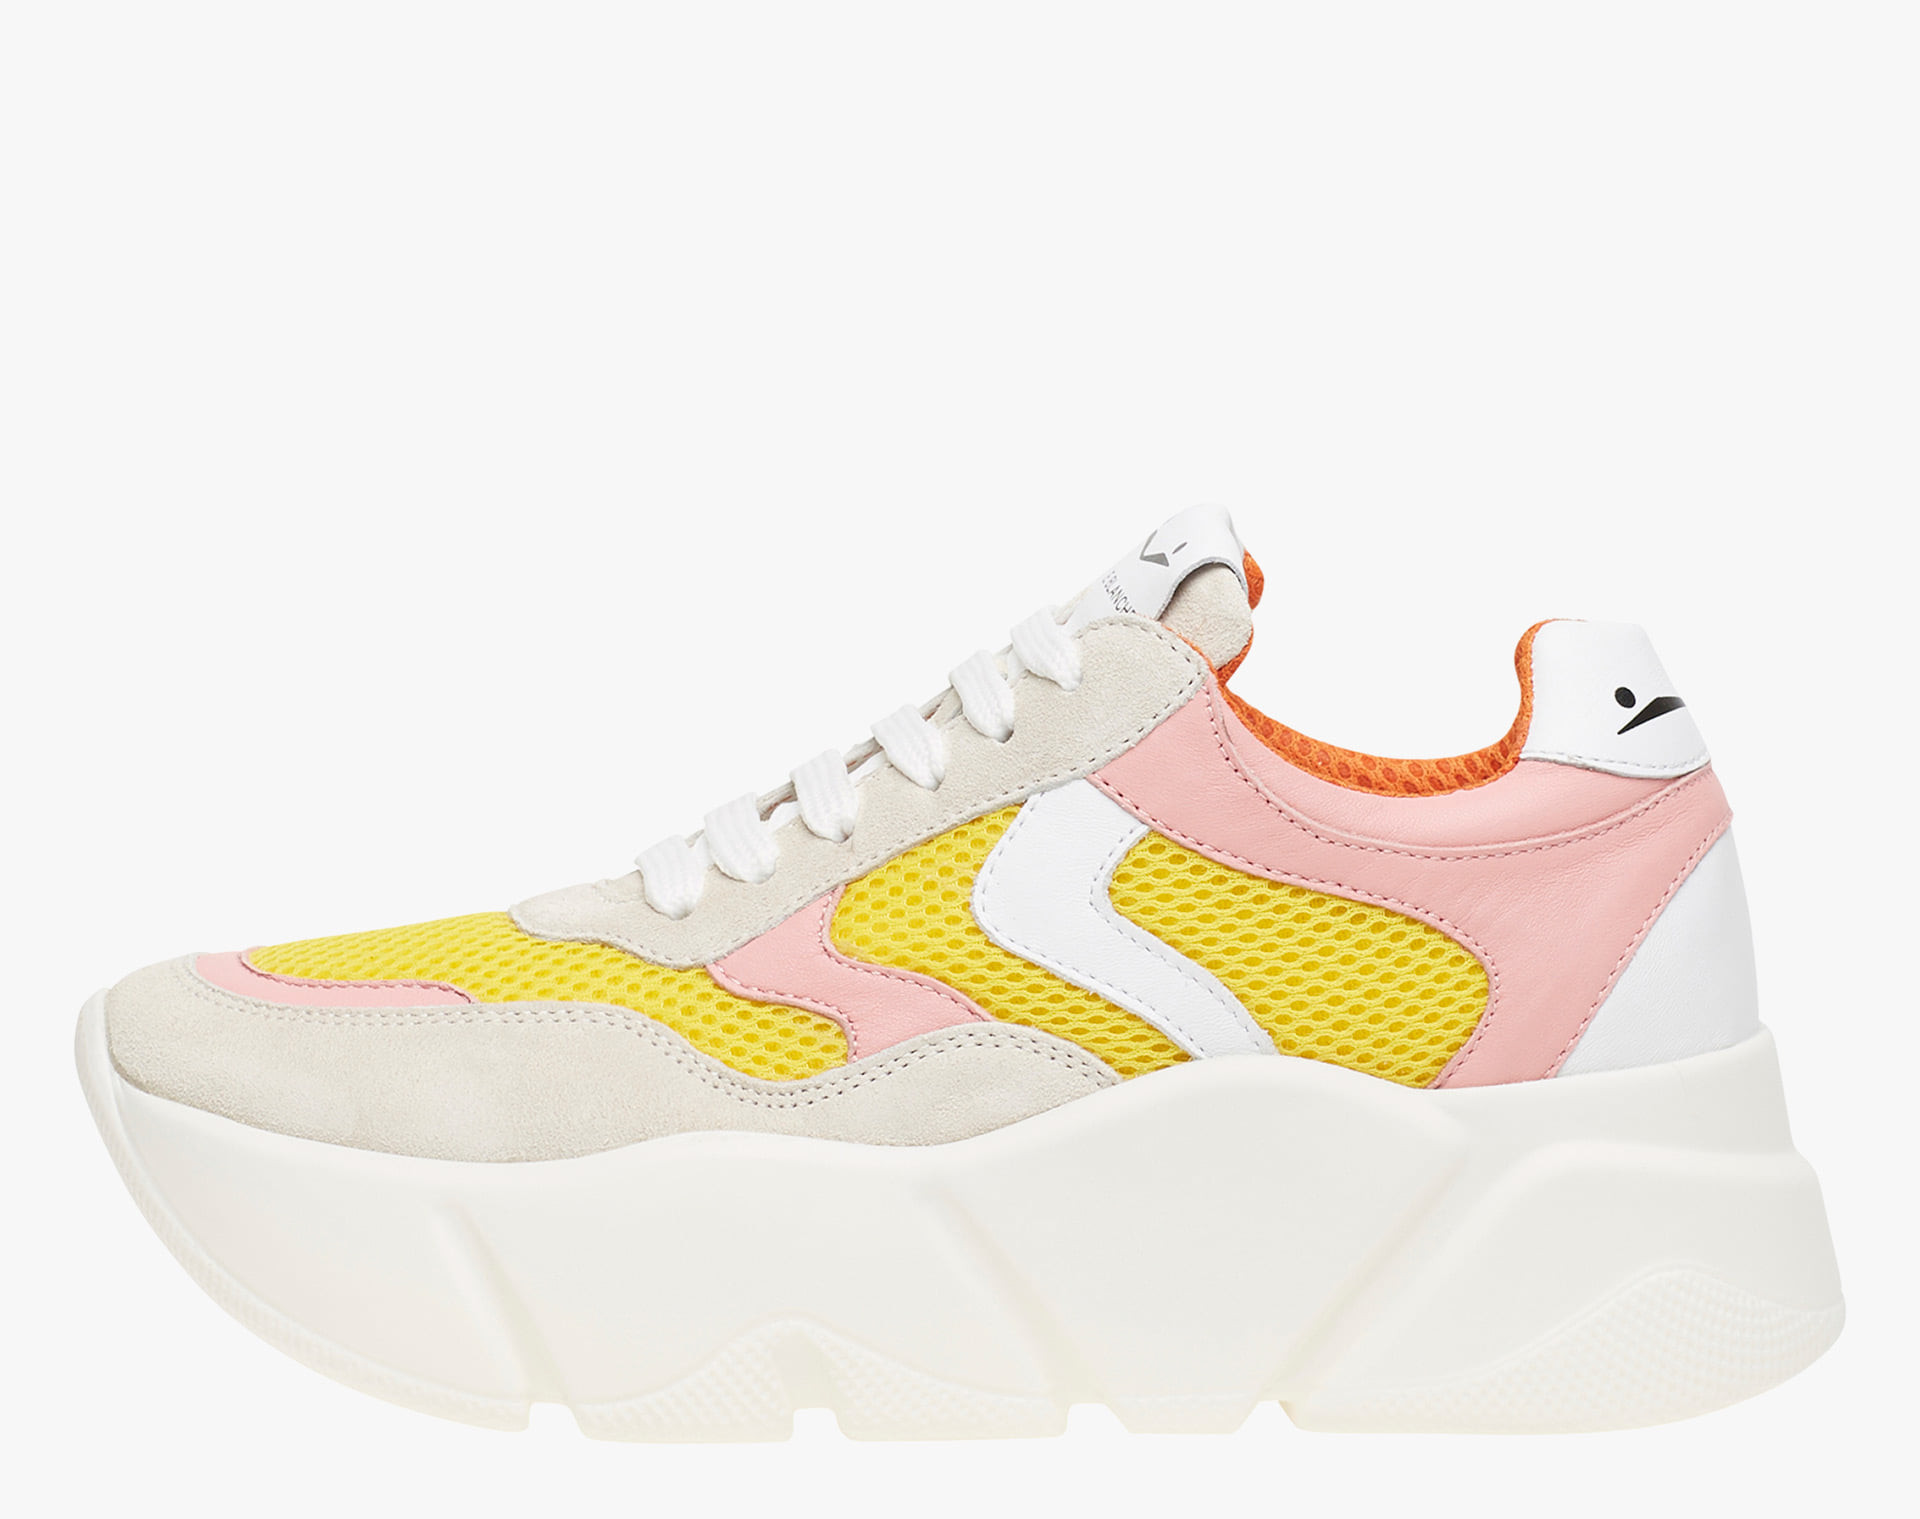 MONSTER - Sneakers with a maxi sole and mesh inserts - Cream/Pink/Yellow